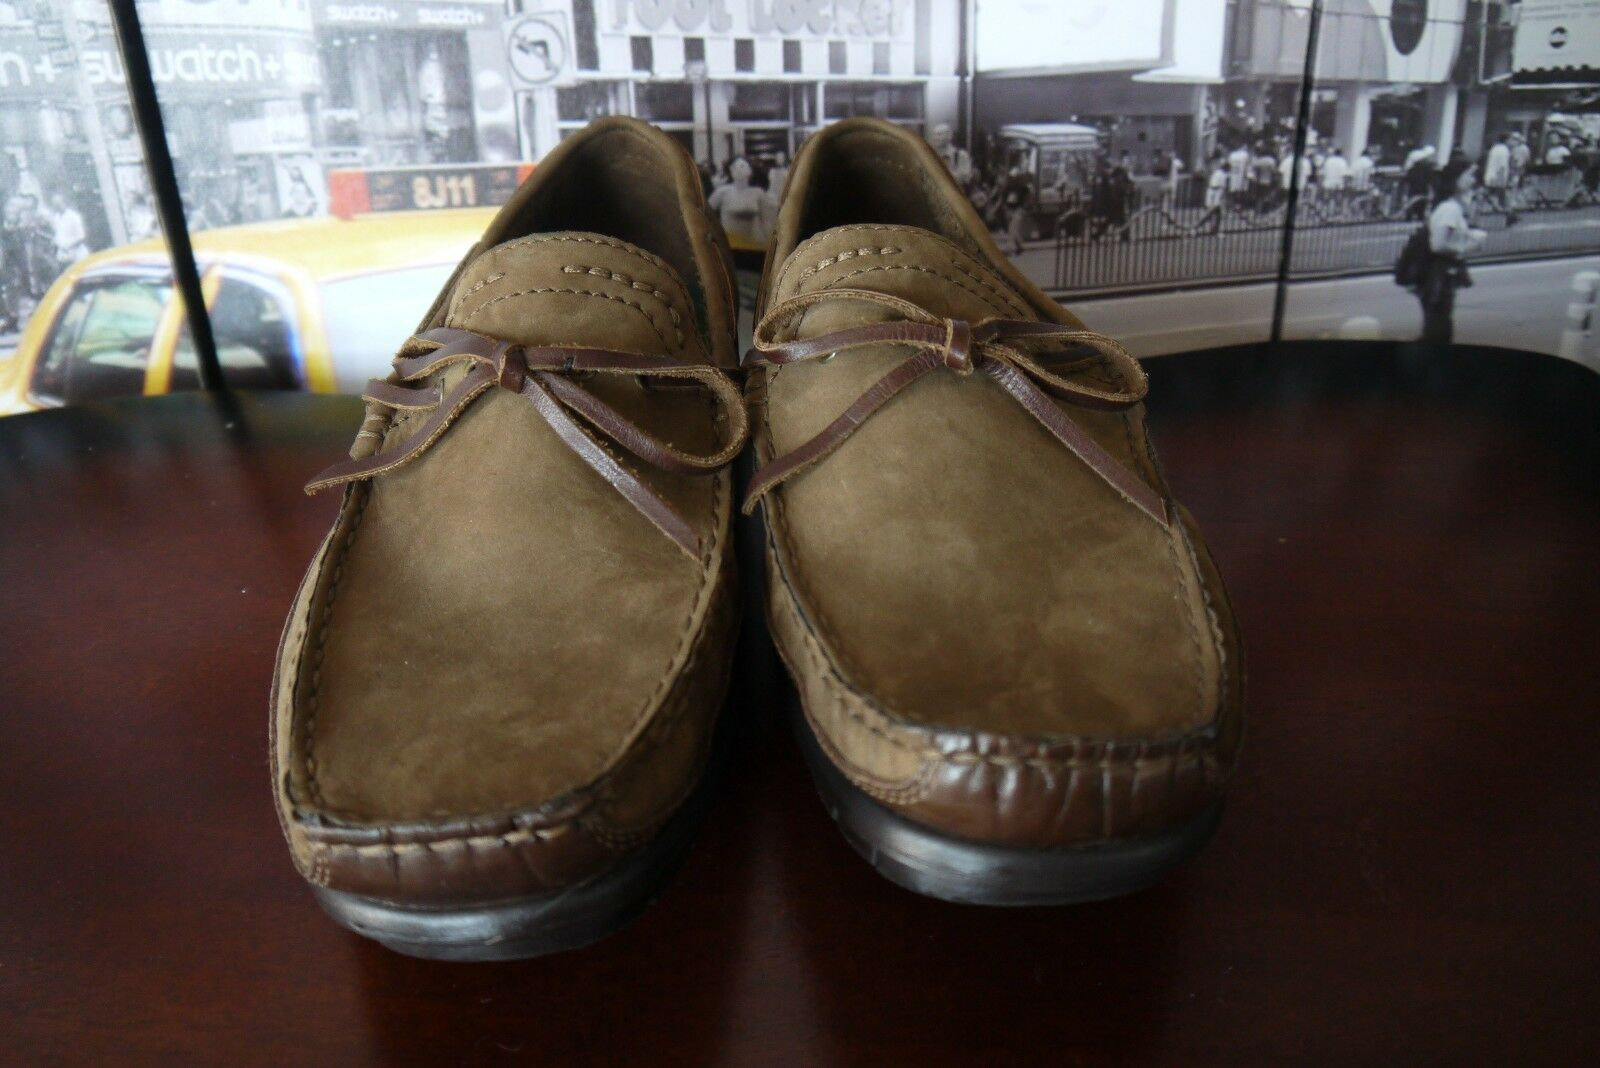 Kalso Earth Drexel Men's Slip On Moccasin Boat shoes Loafers Driver US Size 9 M